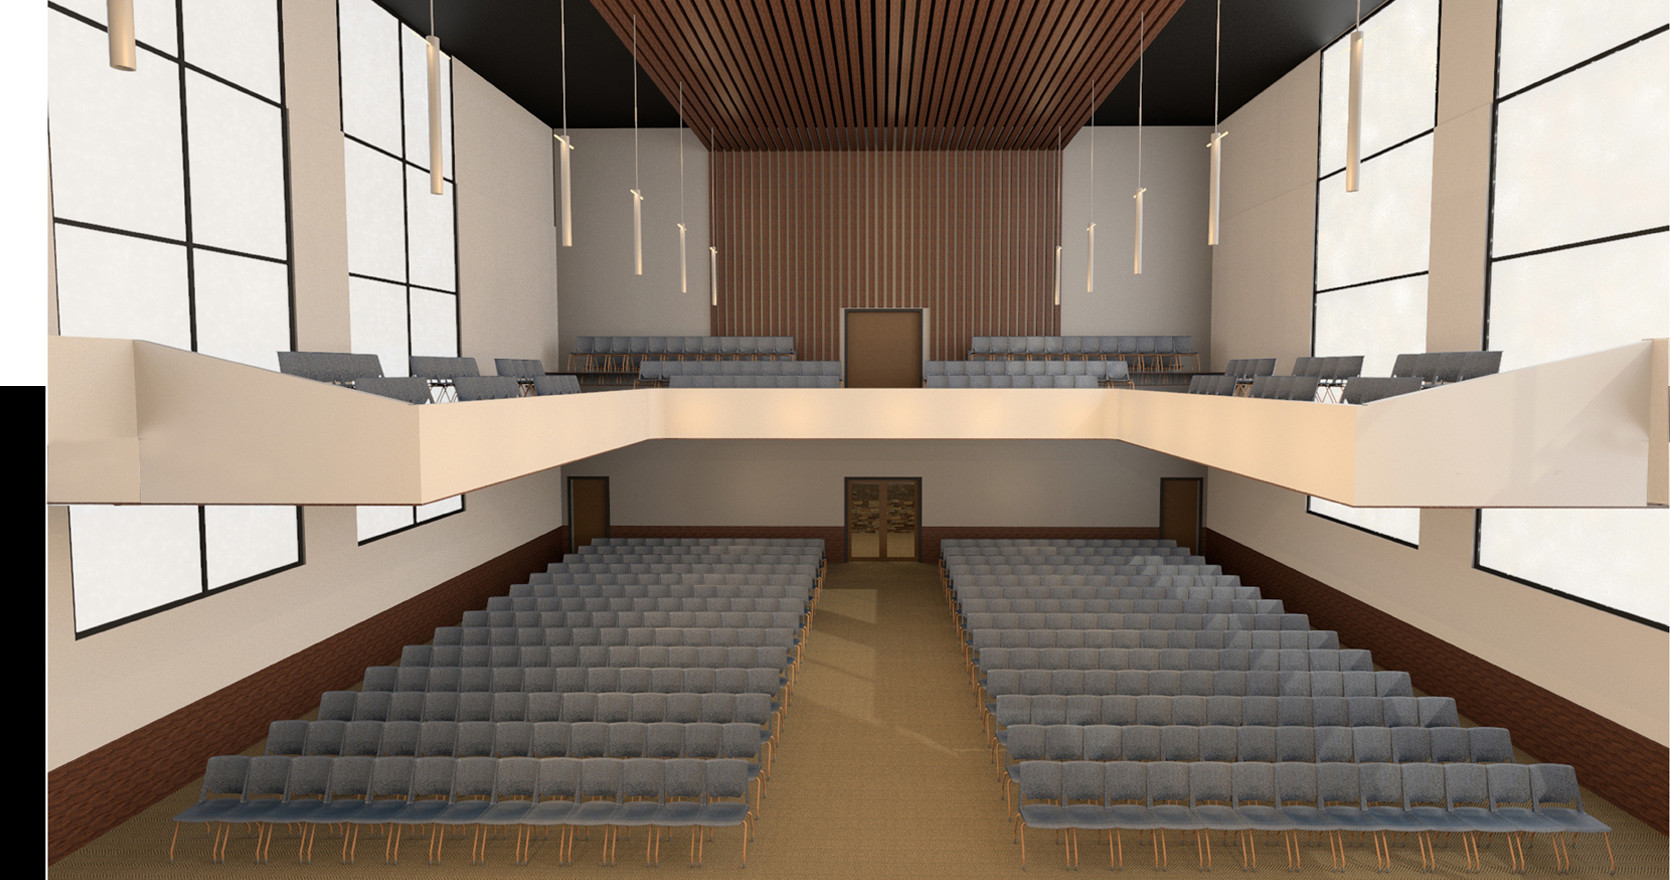 Sanctuary Church Interior Rendering Rear